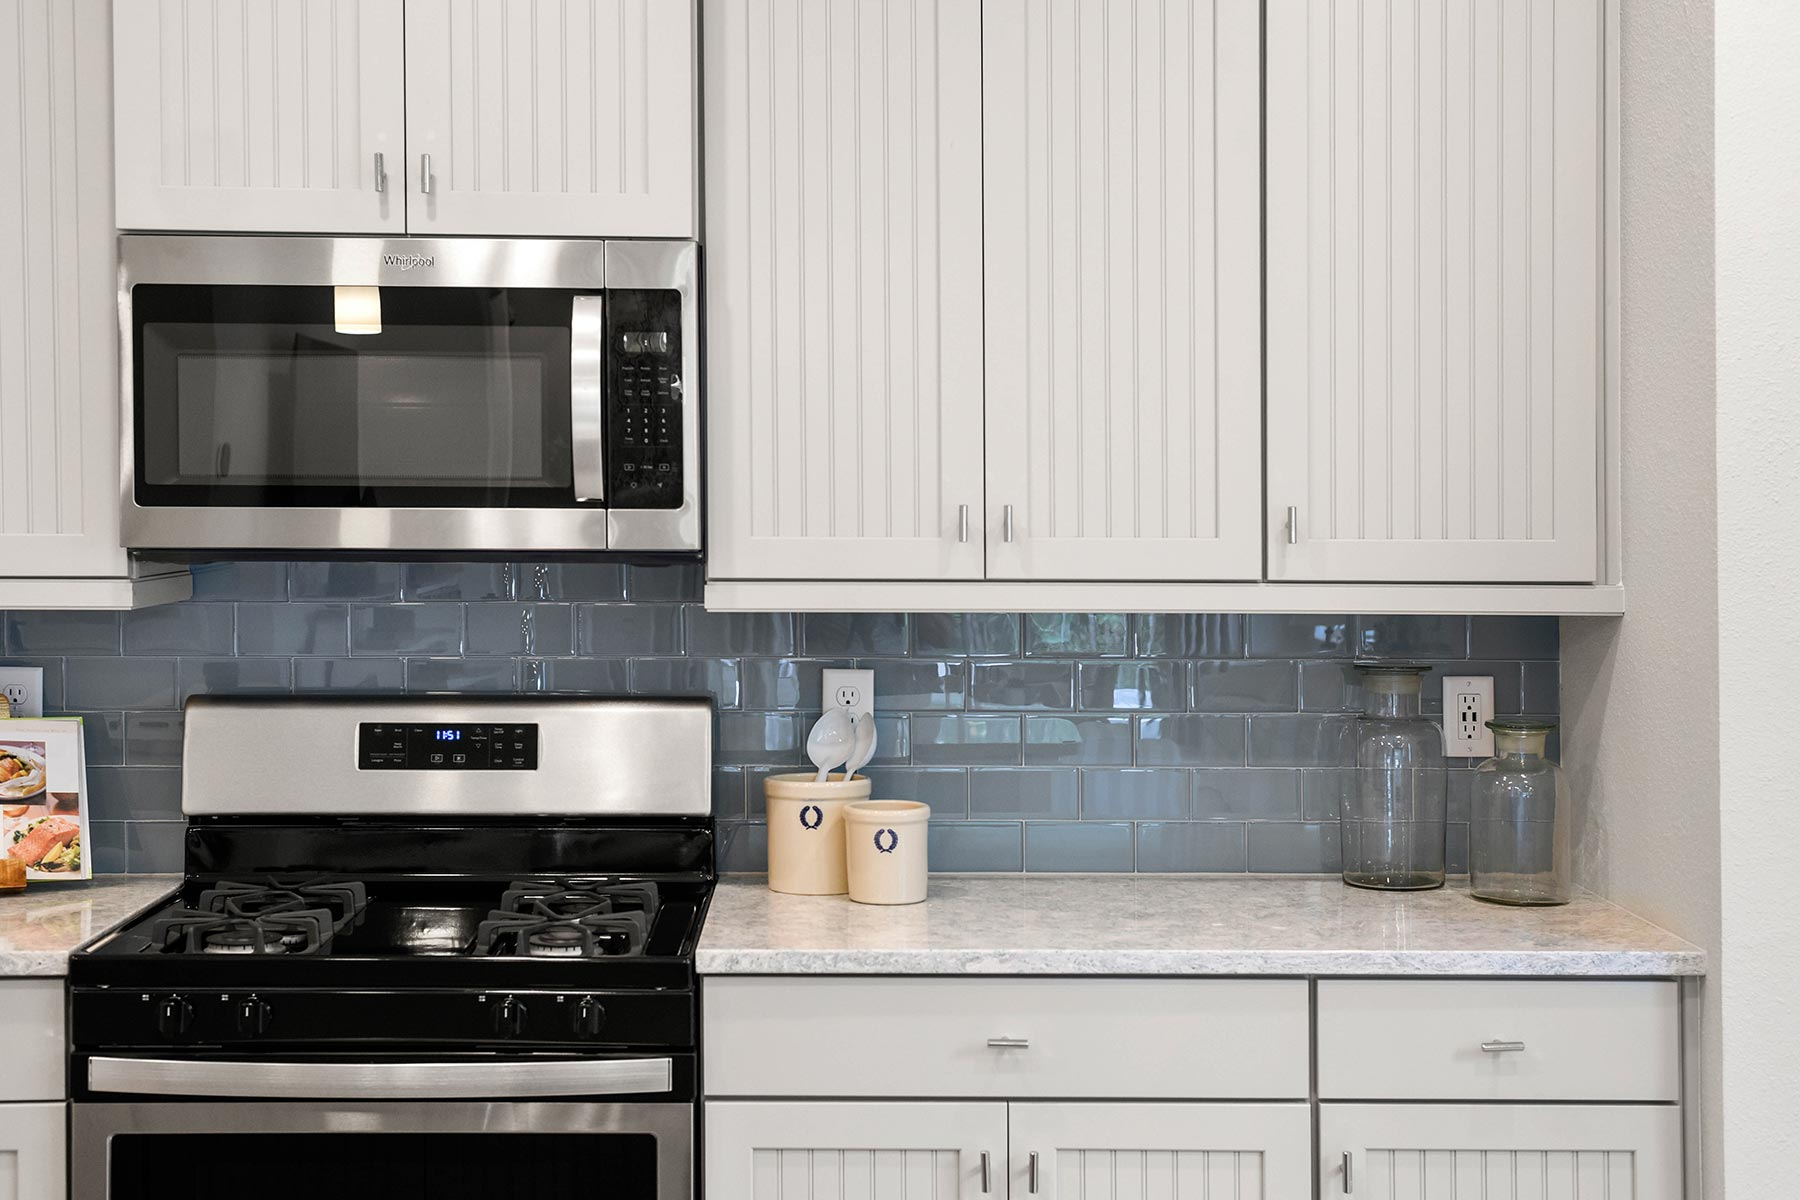 Ocean Plan Kitchen at RiverTown - WaterSong in St. Johns Florida by Mattamy Homes